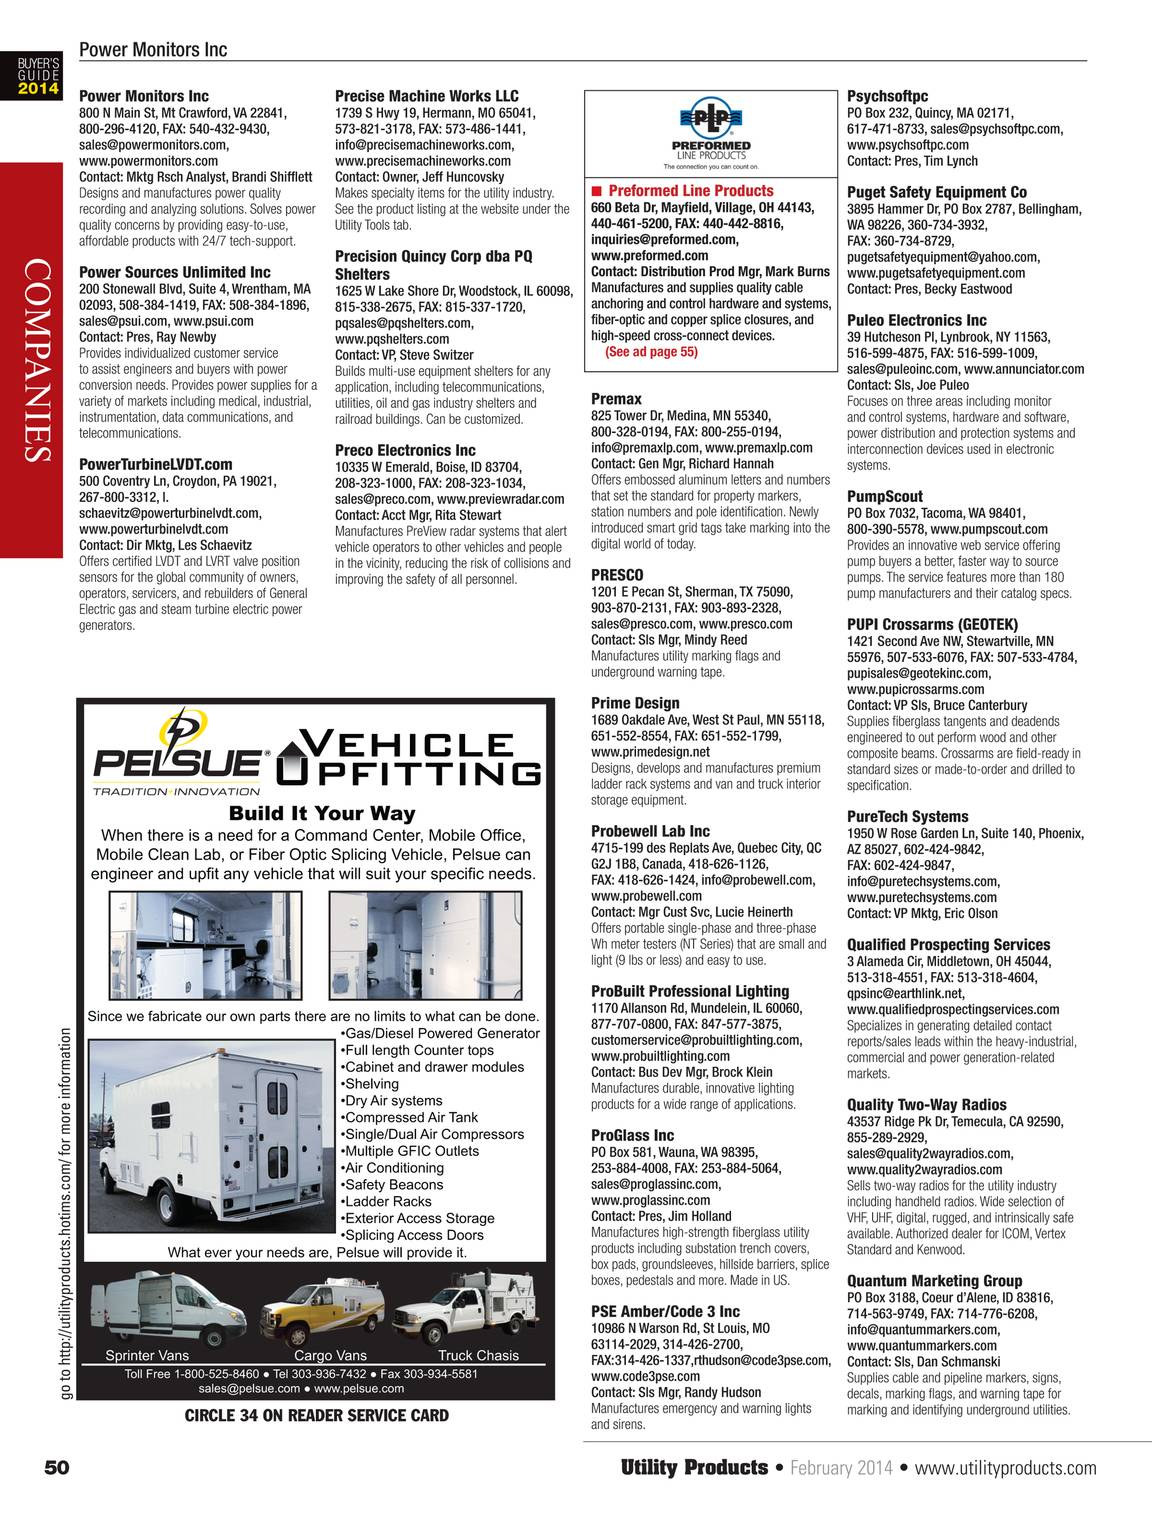 Utility Products - February 2014 - page 49